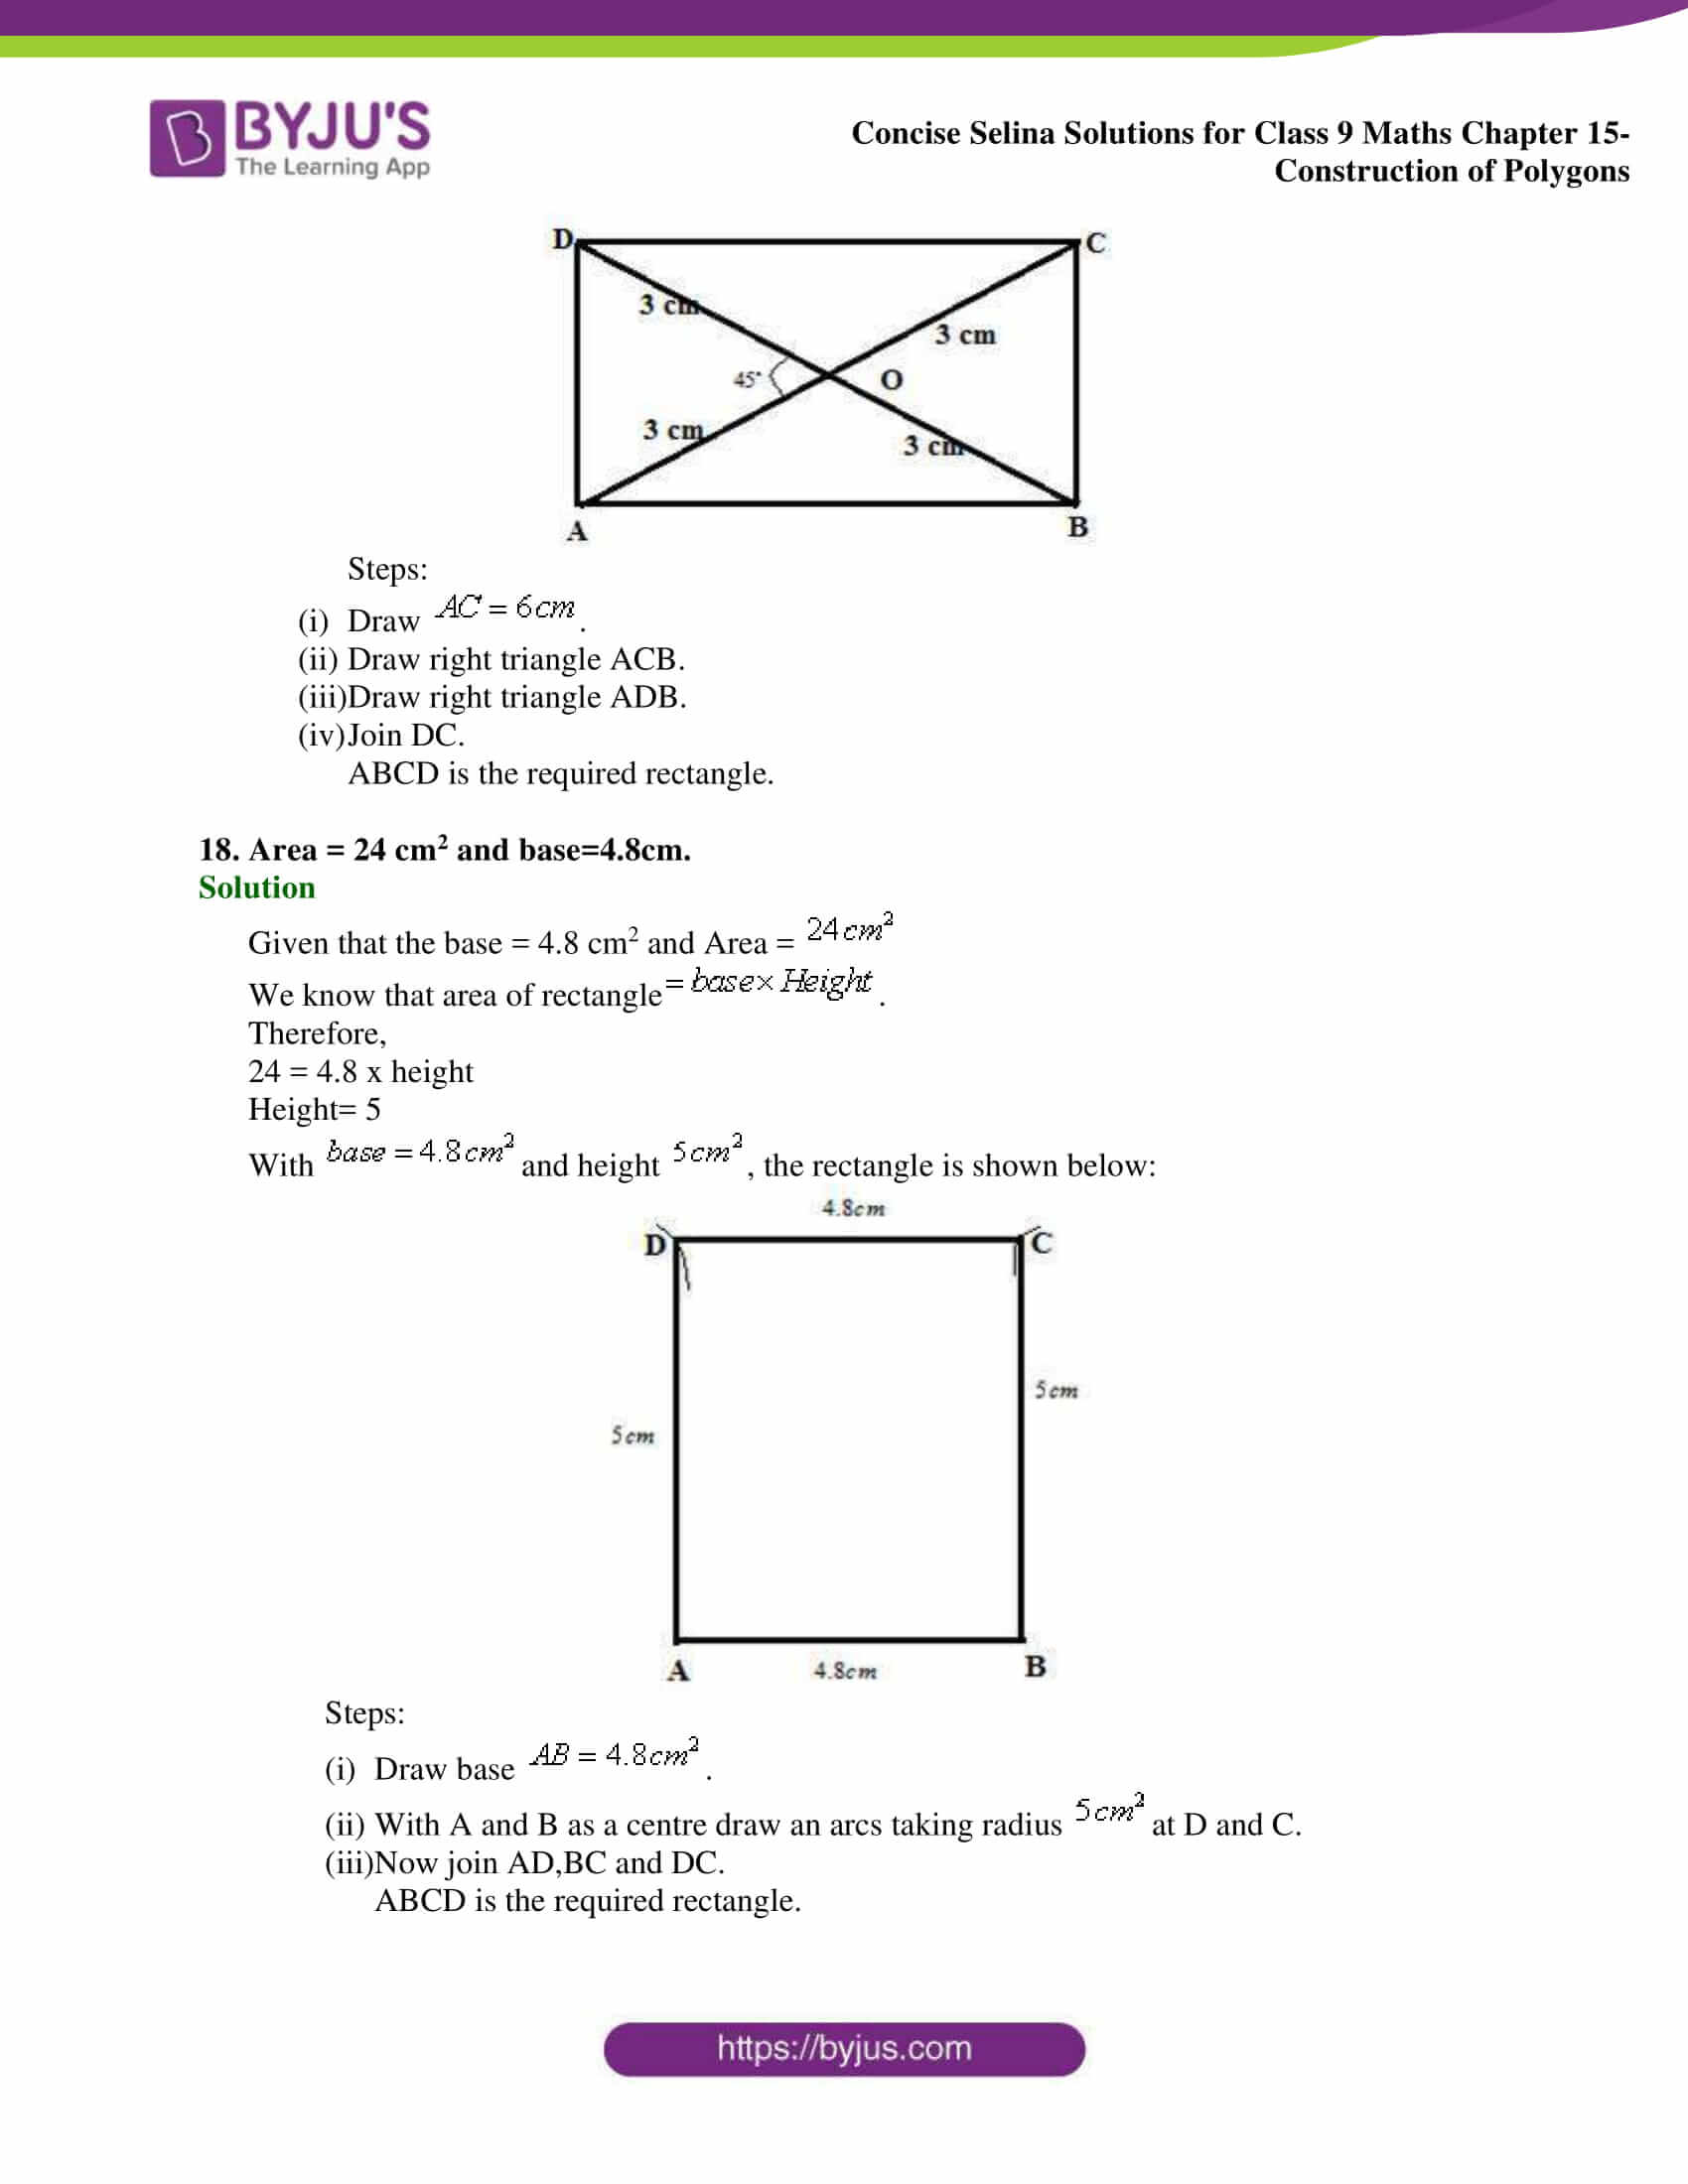 selina Solutions for Class 9 Maths Chapter 15 part 09